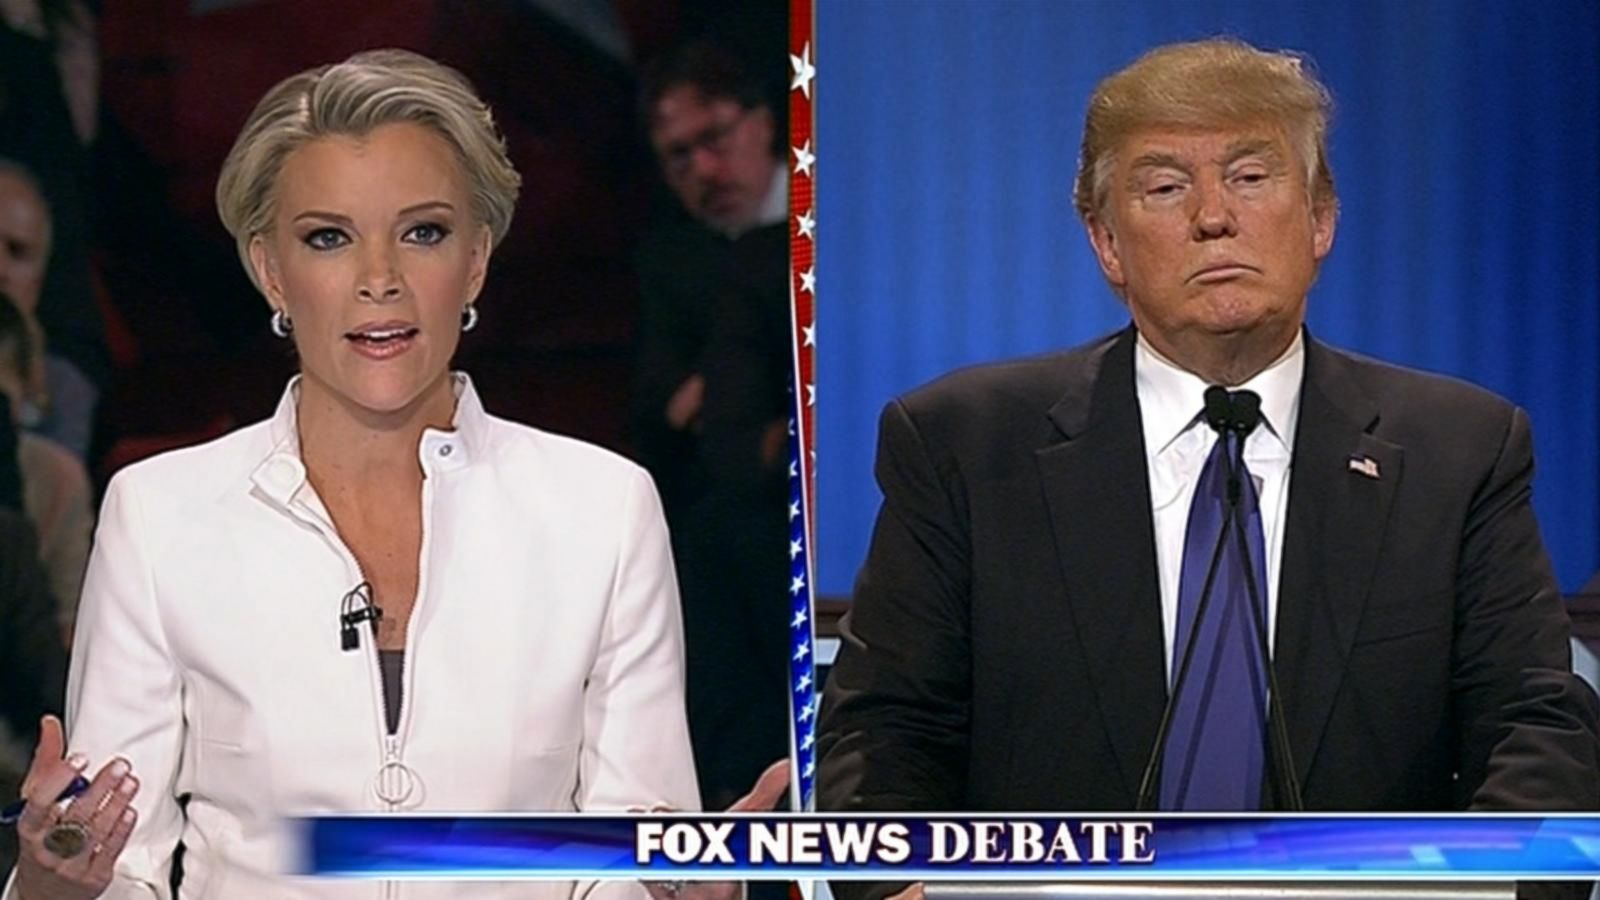 VIDEO: Inside the Feud Between Megyn Kelly and Donald Trump